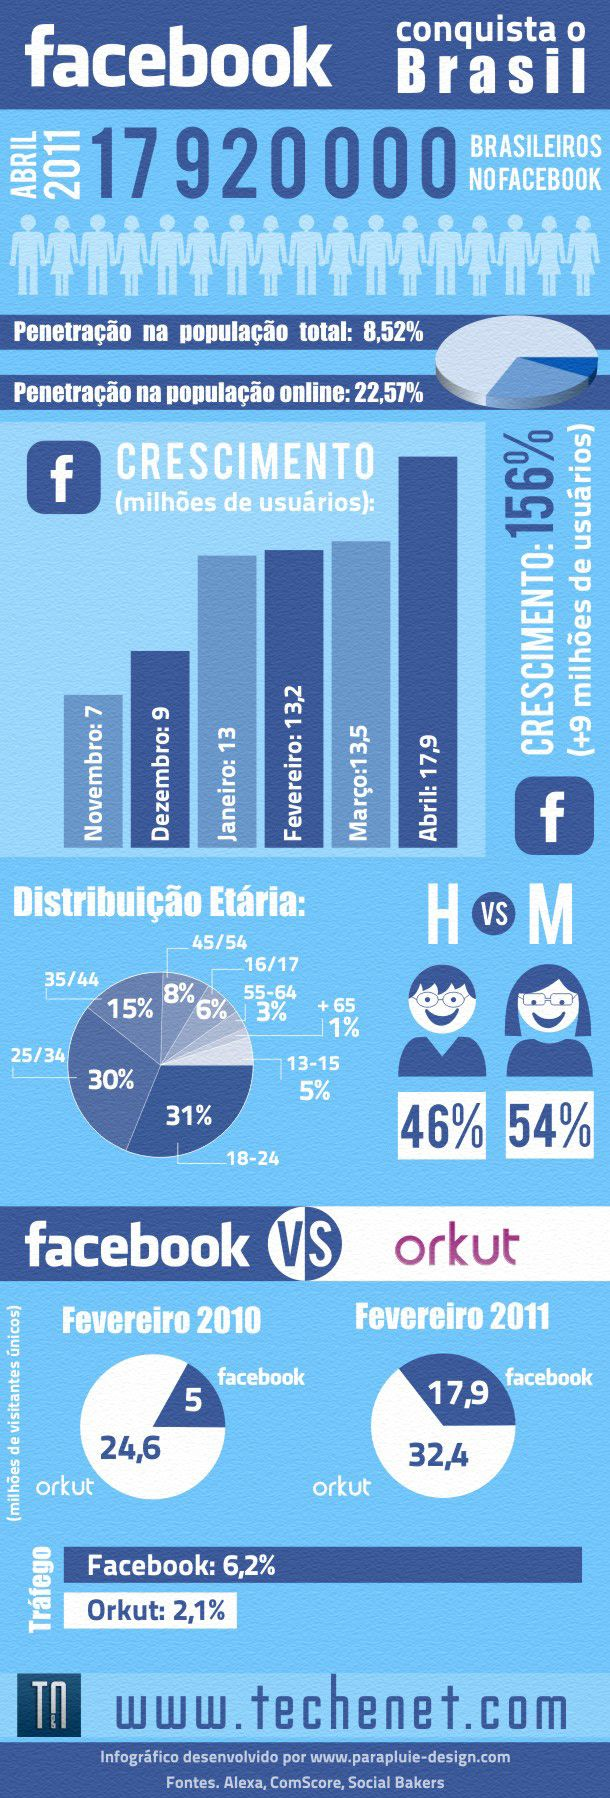 Facebook conquista o brasil infogr fico techenet for O architecture facebook